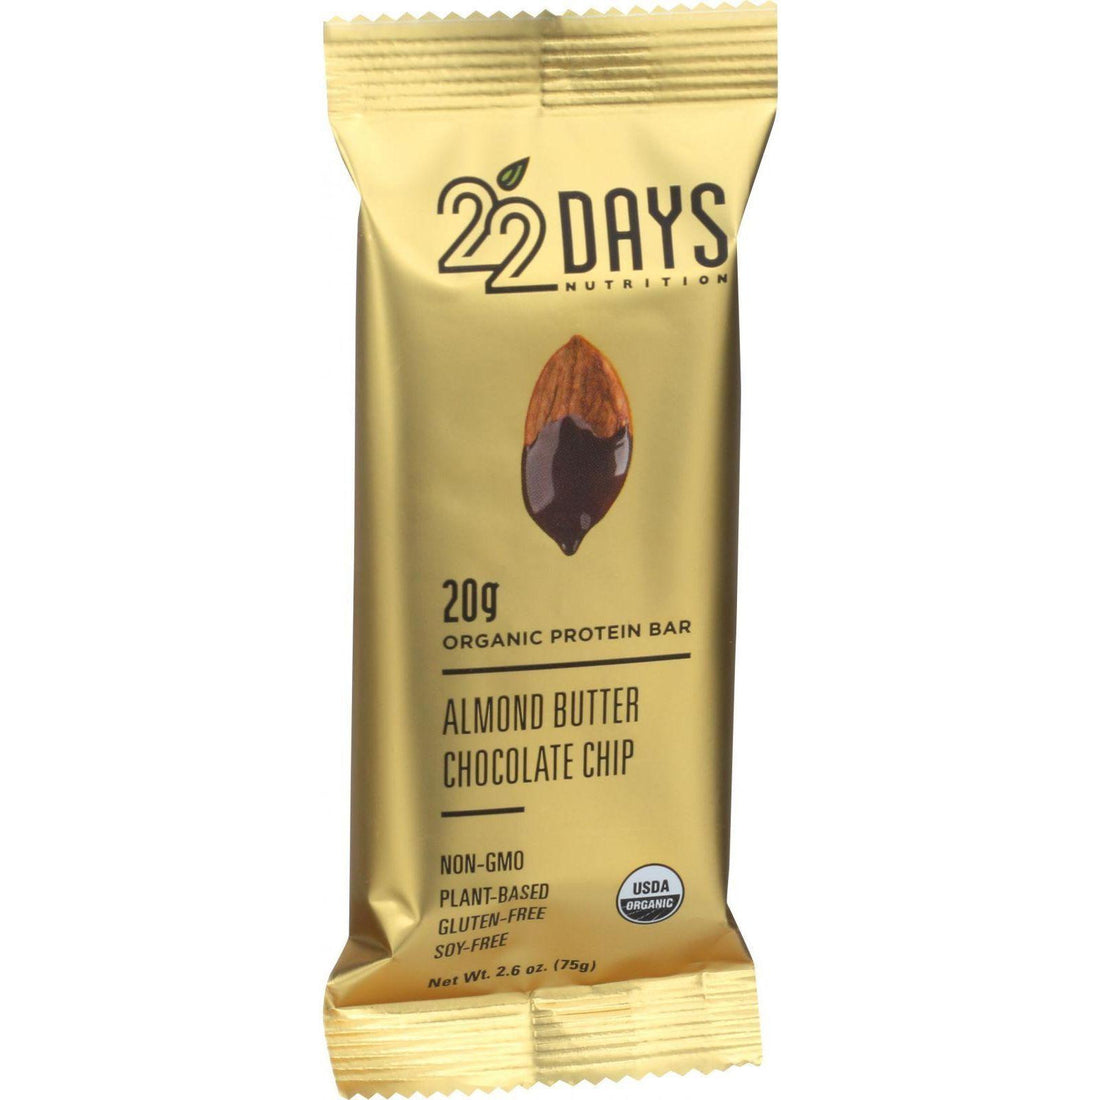 Mother Mantis: 22 Days Nutrition Organic Protein Bar - Almond Butter Chocolate Chip - Case Of 12 - 2.6 Oz Bars 22 Days Nutrition